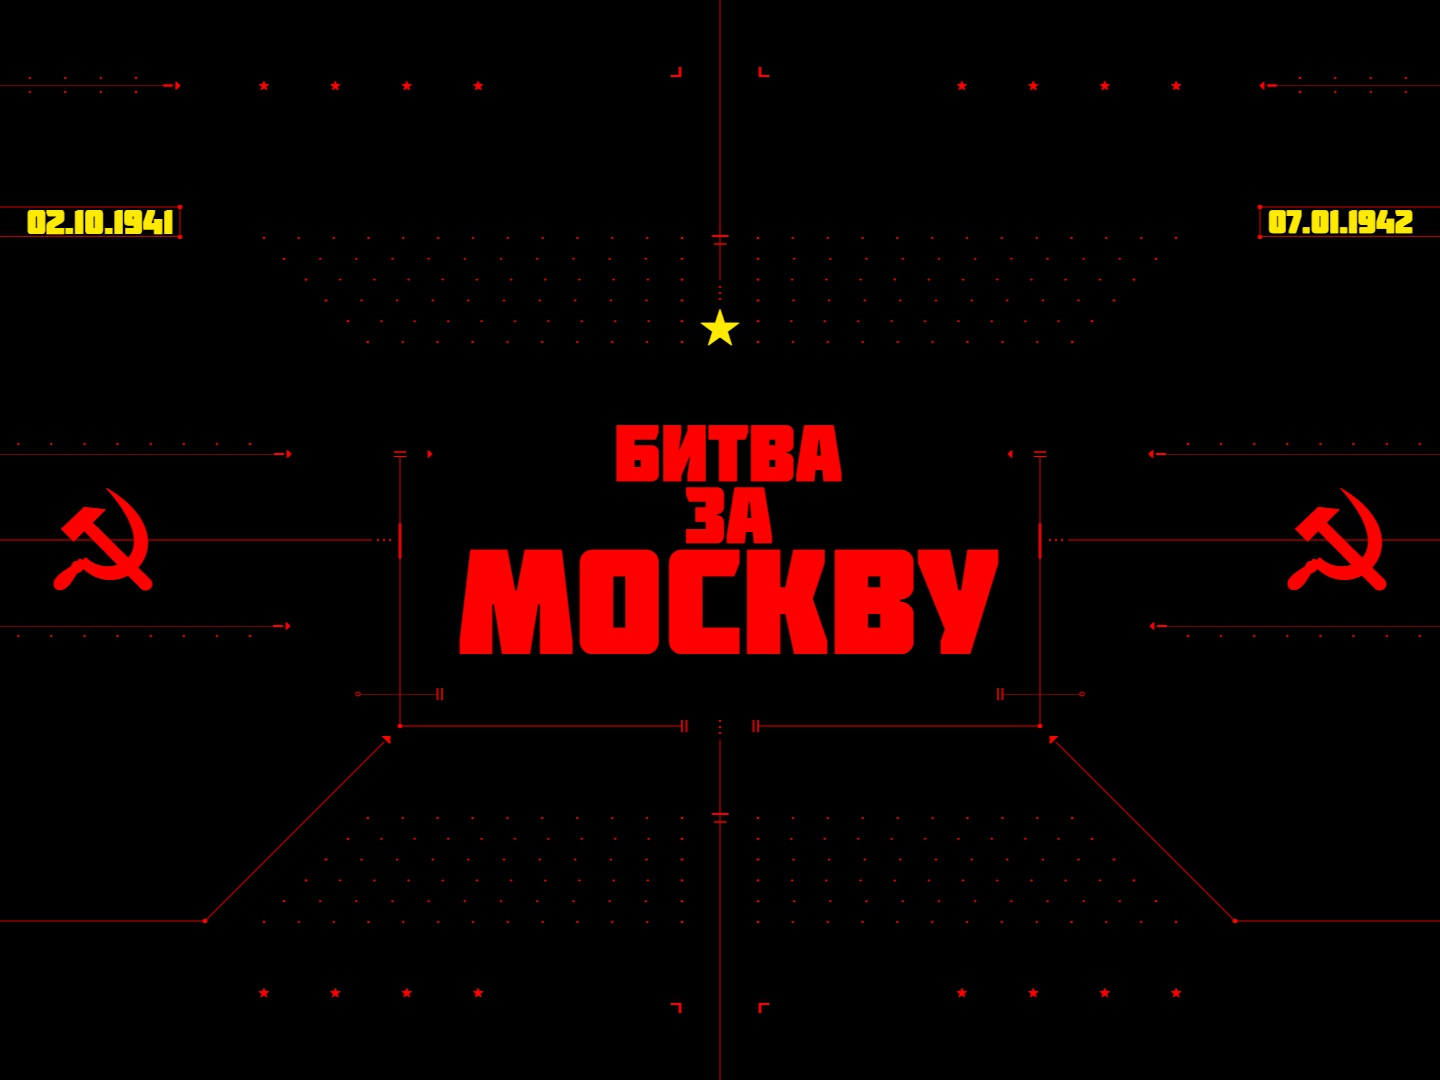 Soviet Union Battle of Moscow FUI HUD history futuristic user interface scifi ui graphic design game motion graphics visual art gui vector typography hud grid film motion design 2d